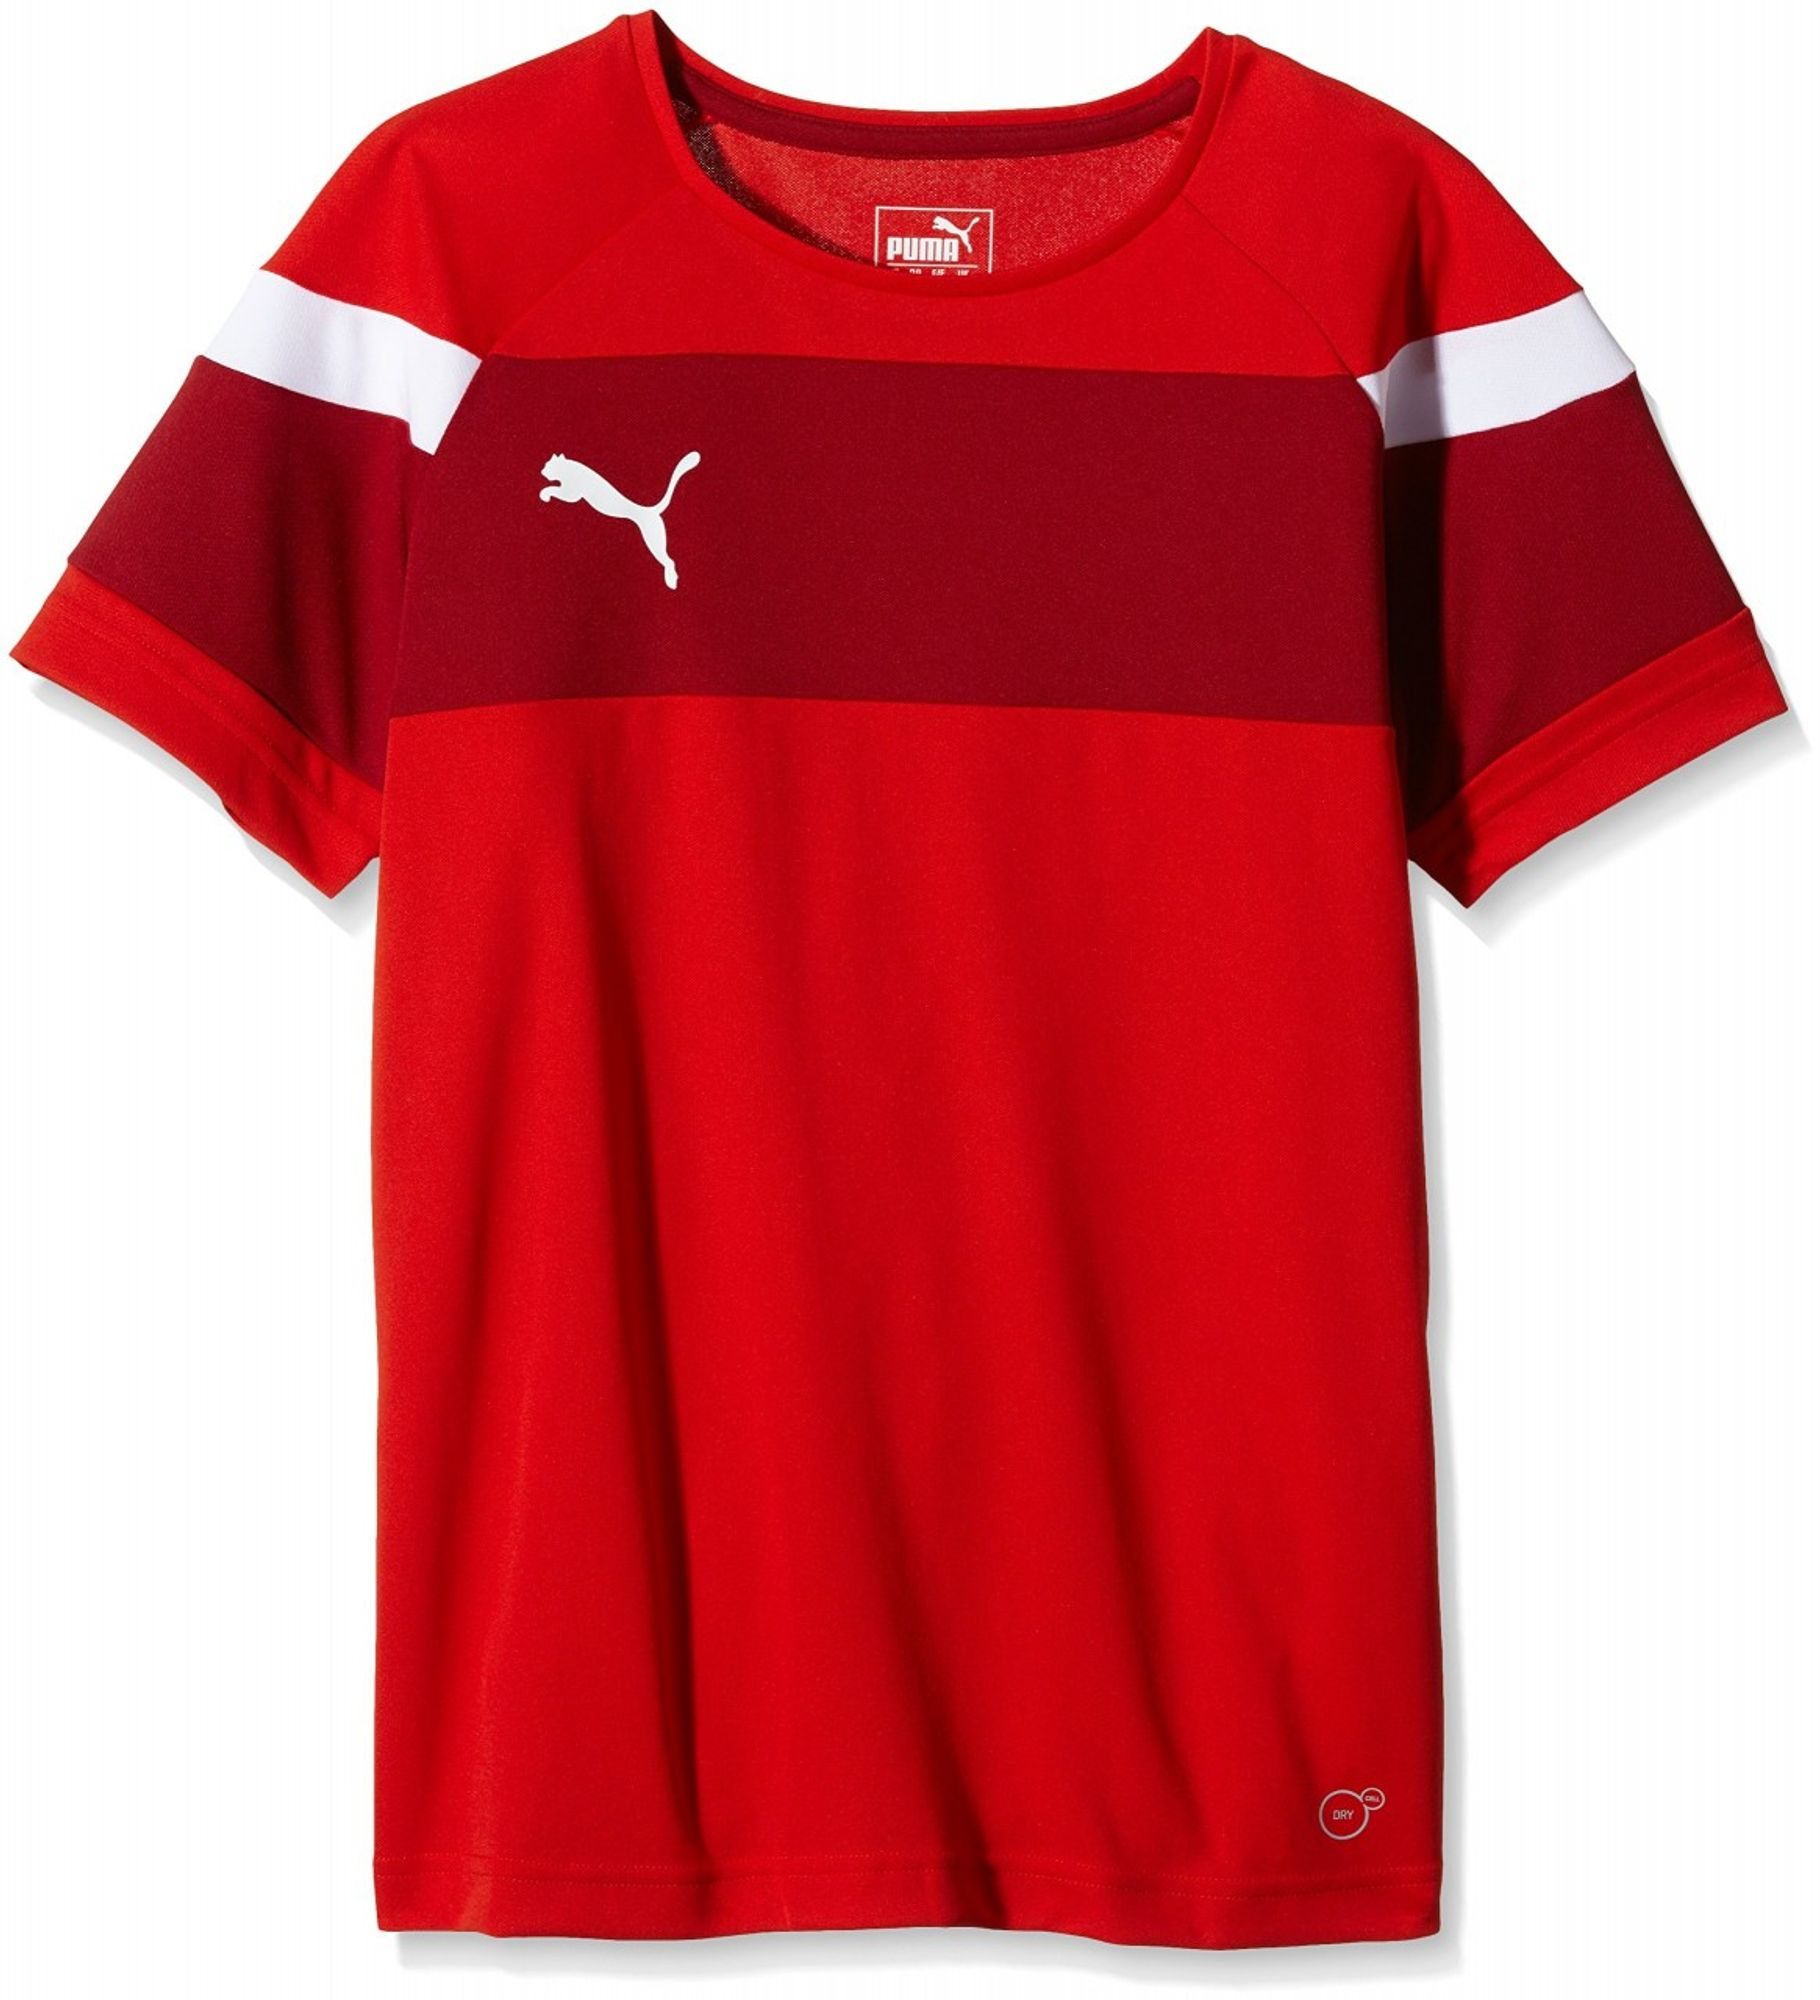 Puma Spirit II Training Jersey - puma red-white